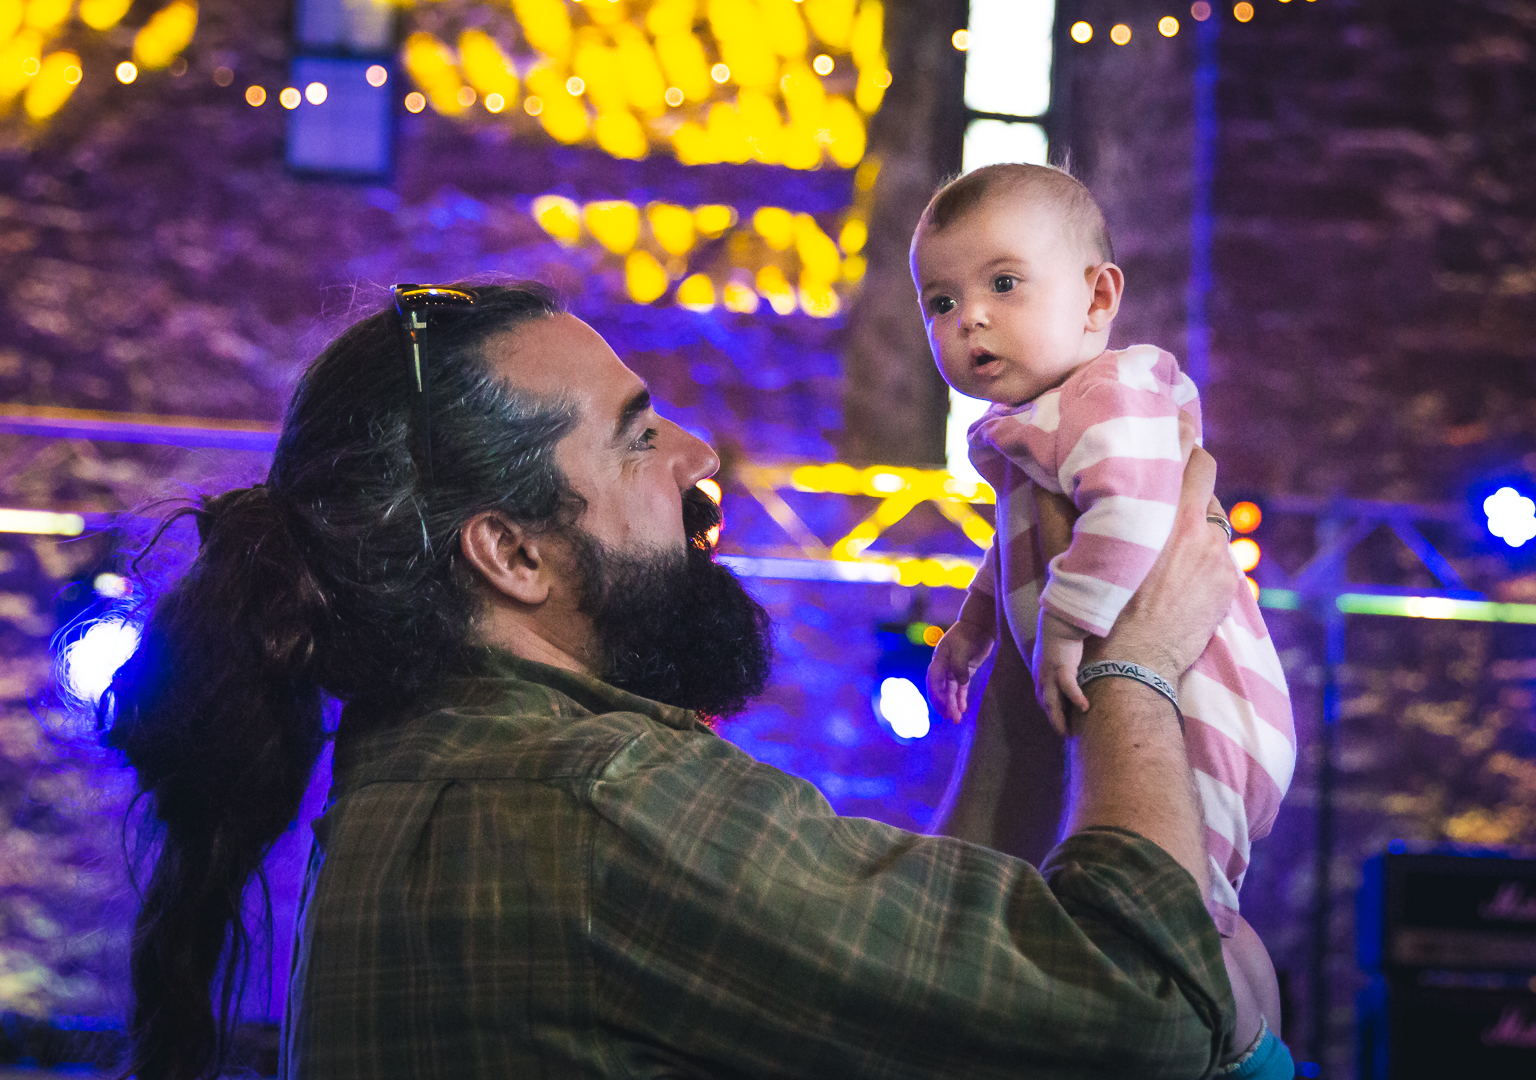 The Spanish Barn - Day time - Family ticket required for entry11.00am to 12.30pm – Jungle jungle12.30pm to 1.15pm – worlds tallest bubbleologist1.15pm to 3.15pm – Big Fish Little Fish3.15pm to 3.30pm - worlds tallest bubbleologist3.30pm to 4.15pm – Burt Miller